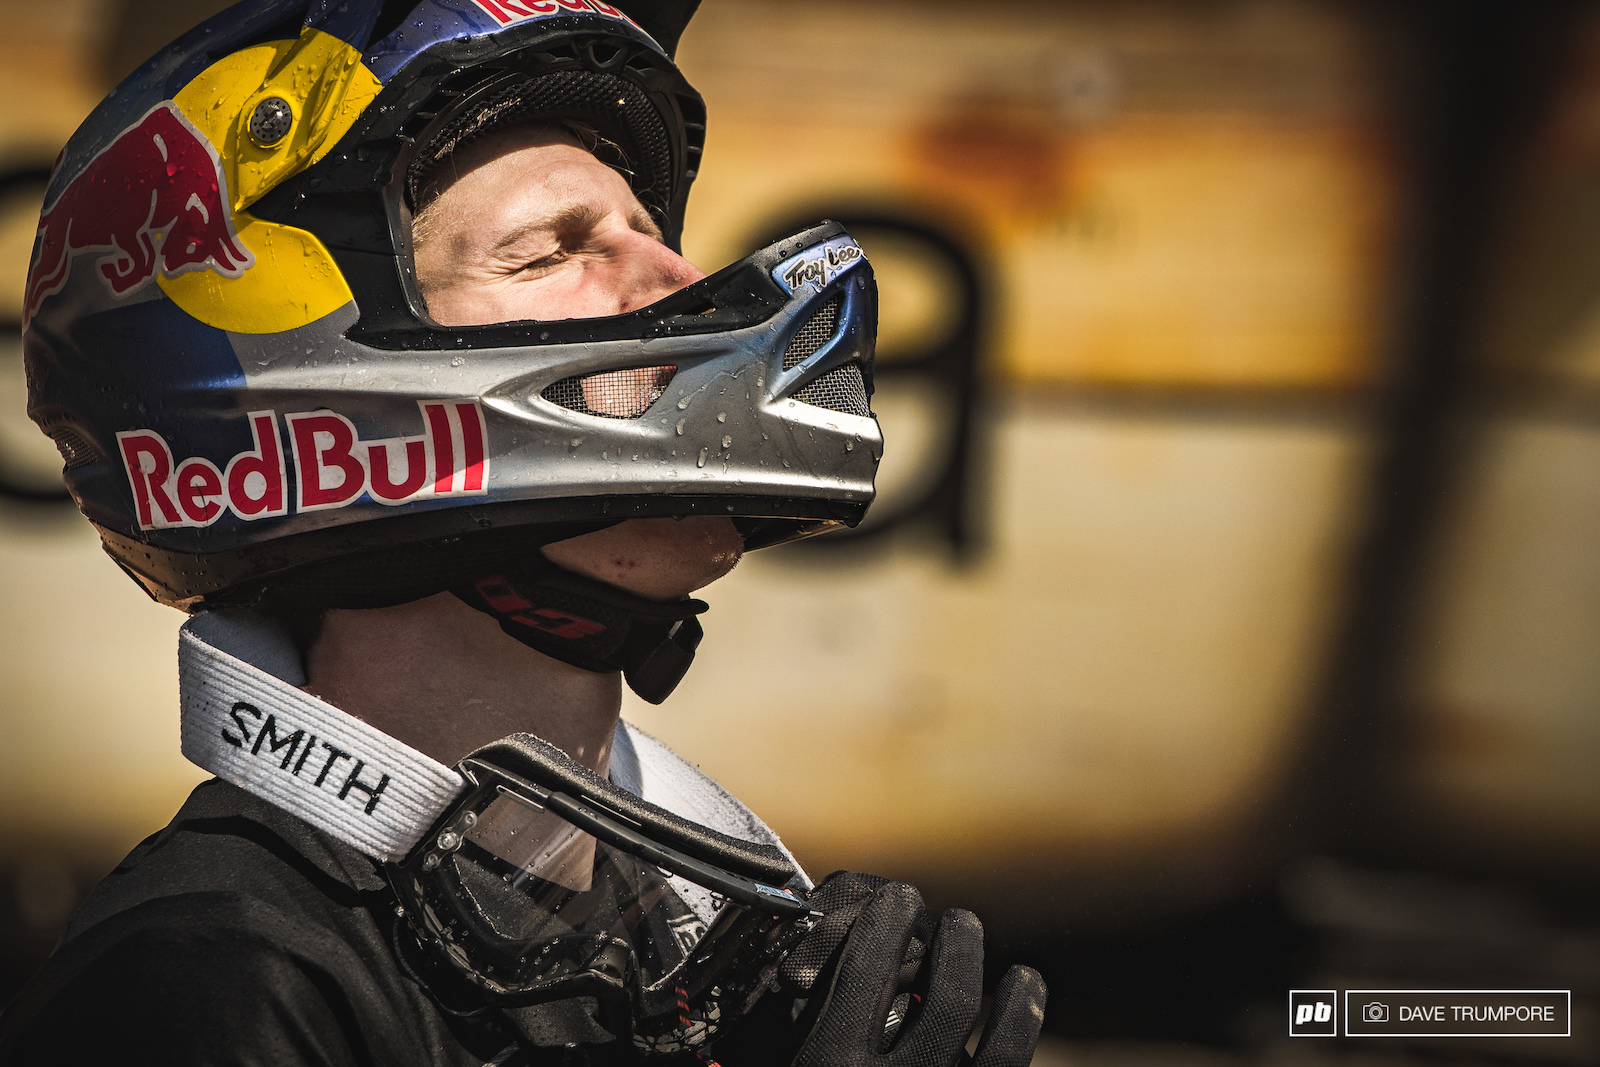 A sigh of relief from Brandon Semenuk as he wins Red Bull Joyride for the 5th time.